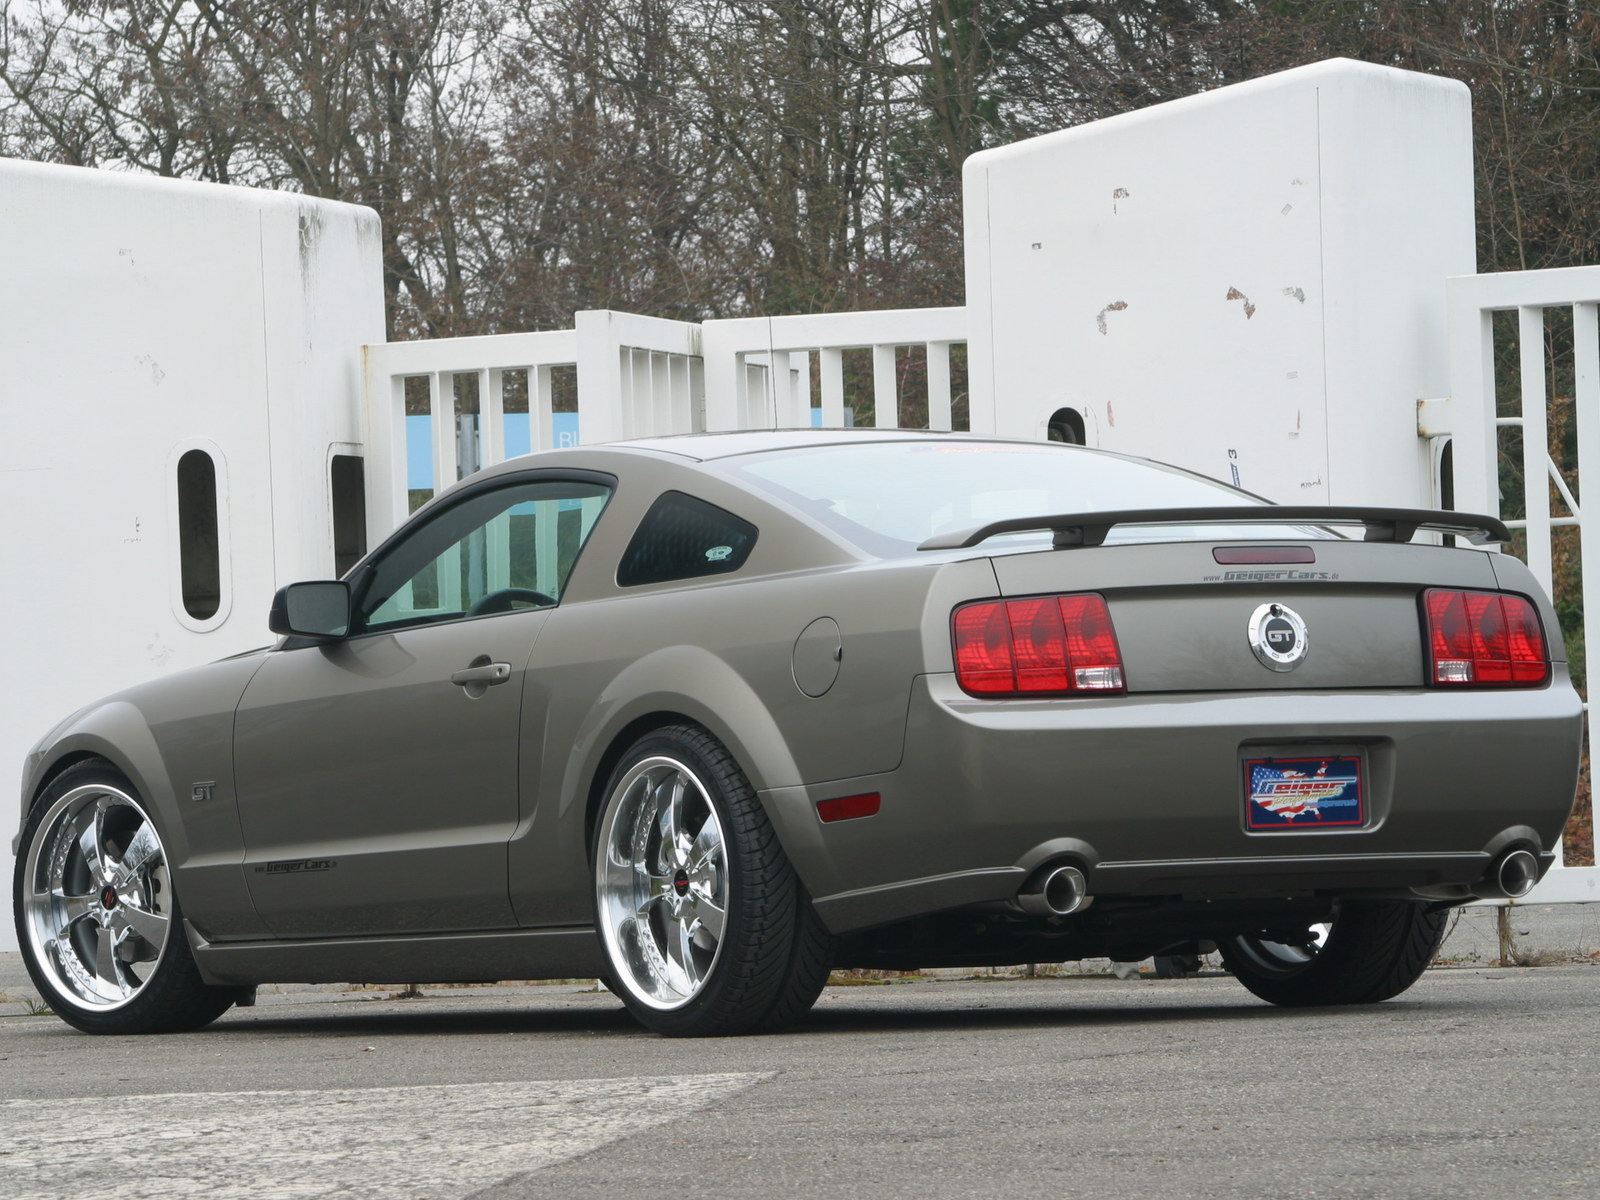 Image SEO all 2 Gt mustang post 6